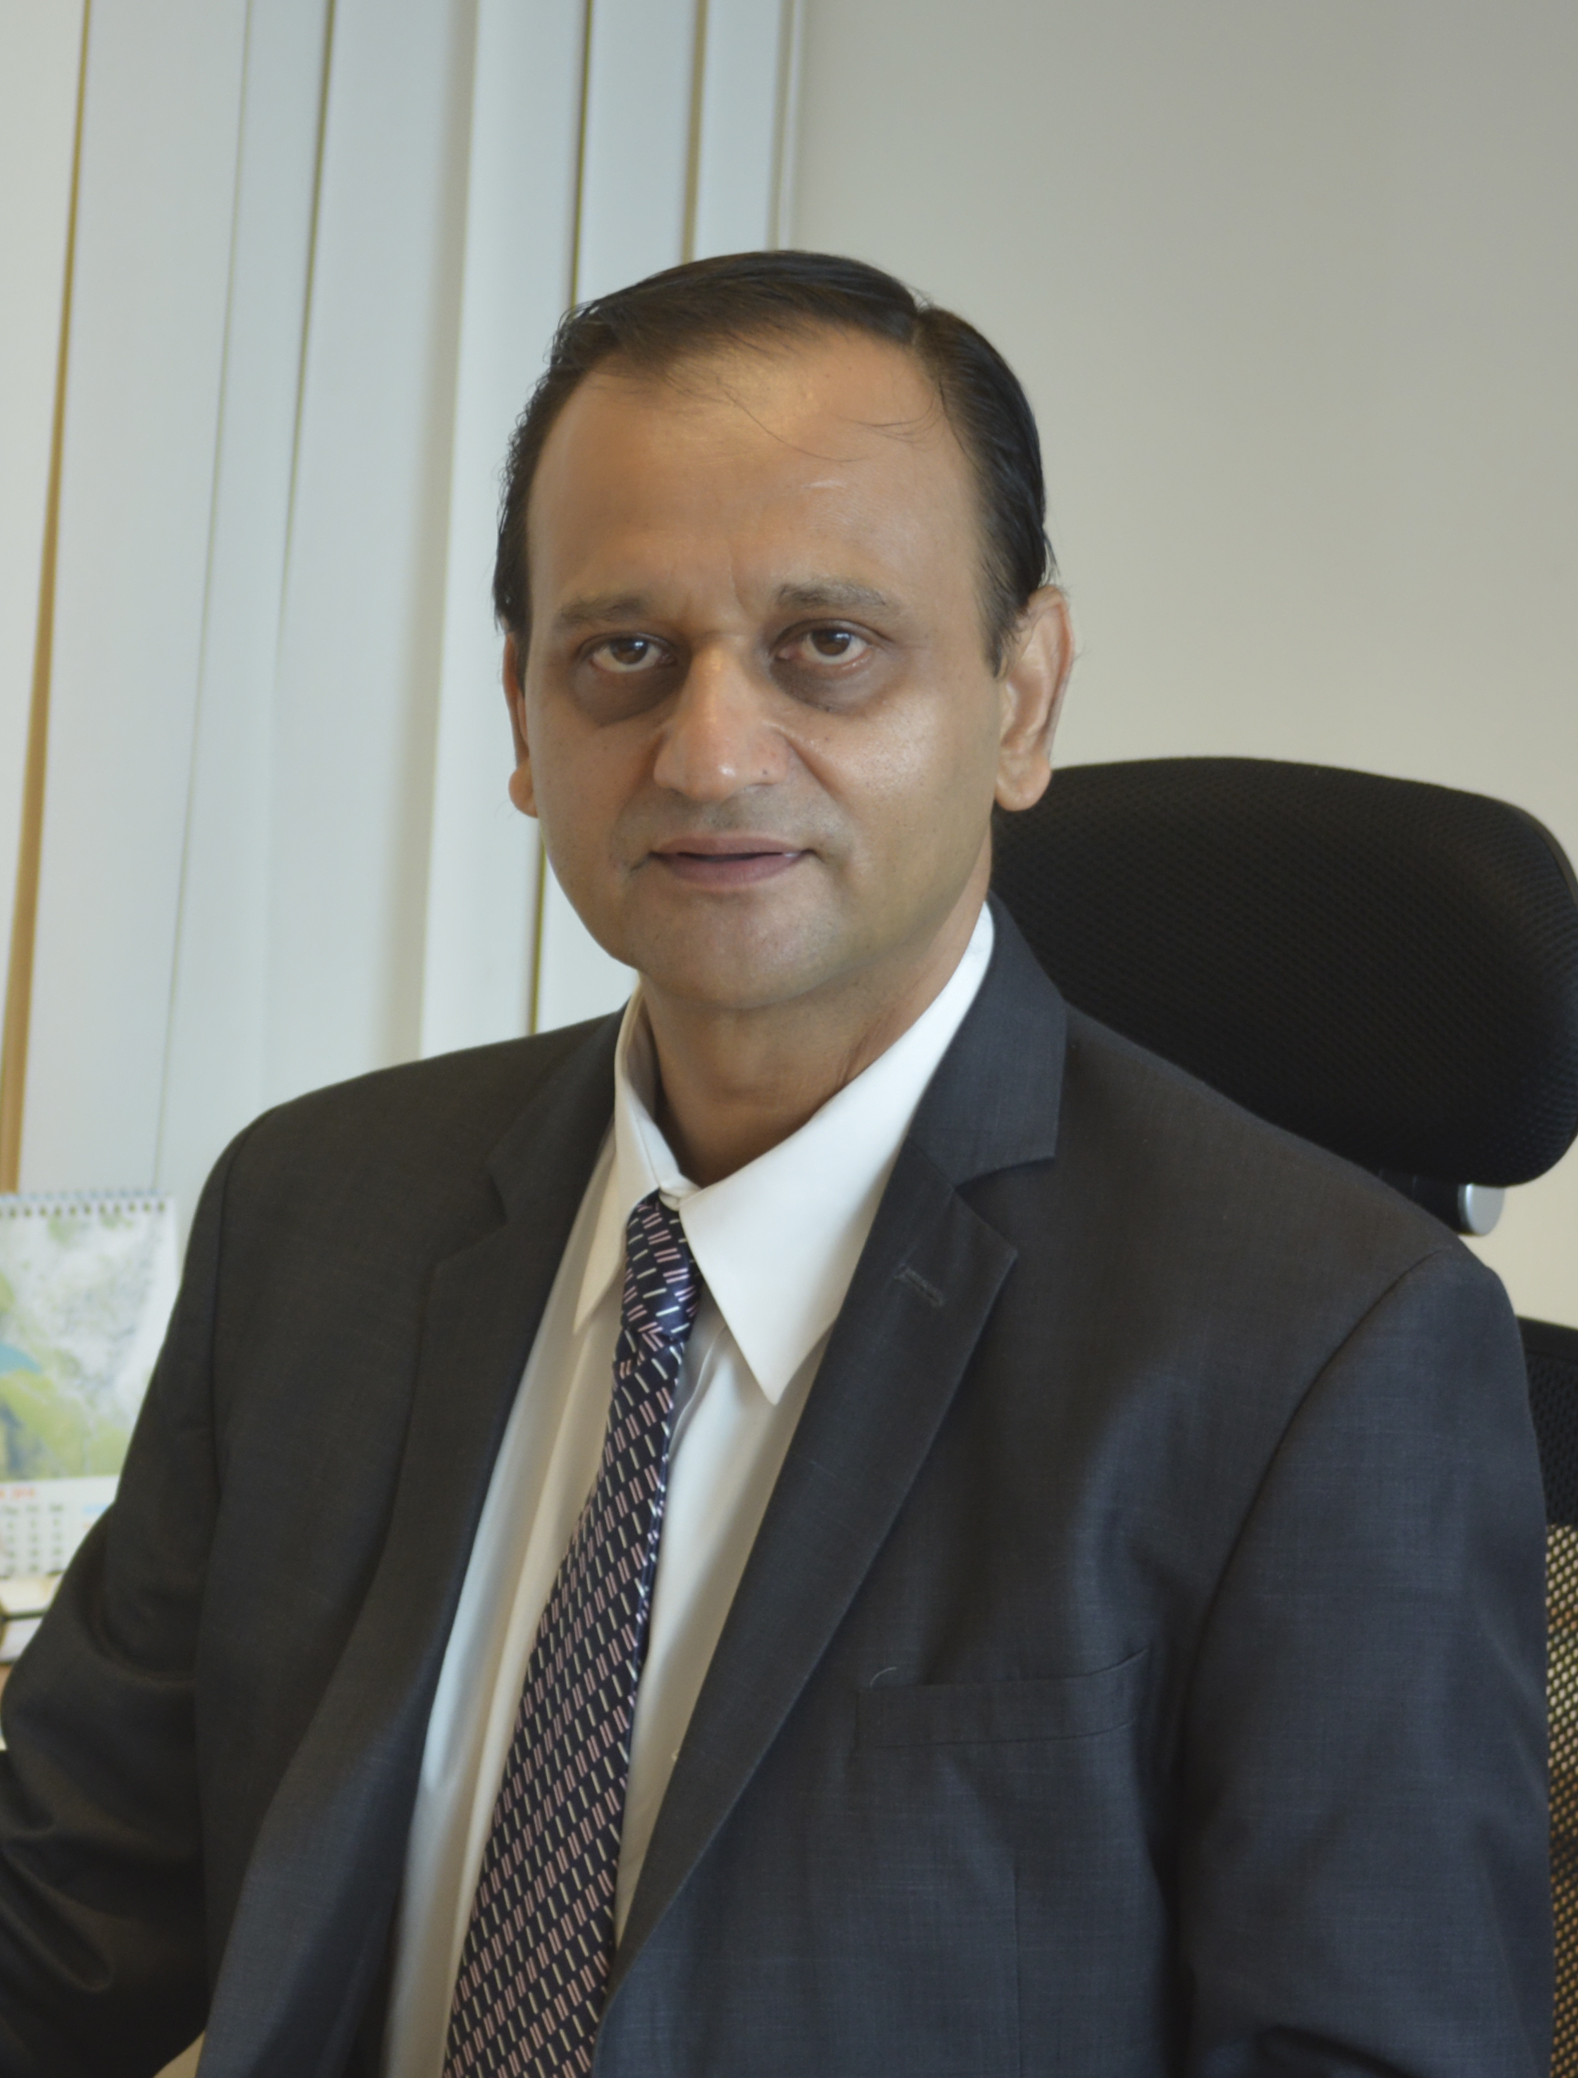 Ashish Khanna, executive director and CEO, Tata Power Solar: 'Now Indian developers are more mature, because a lot of them have already tested projects'. Credit: Tata